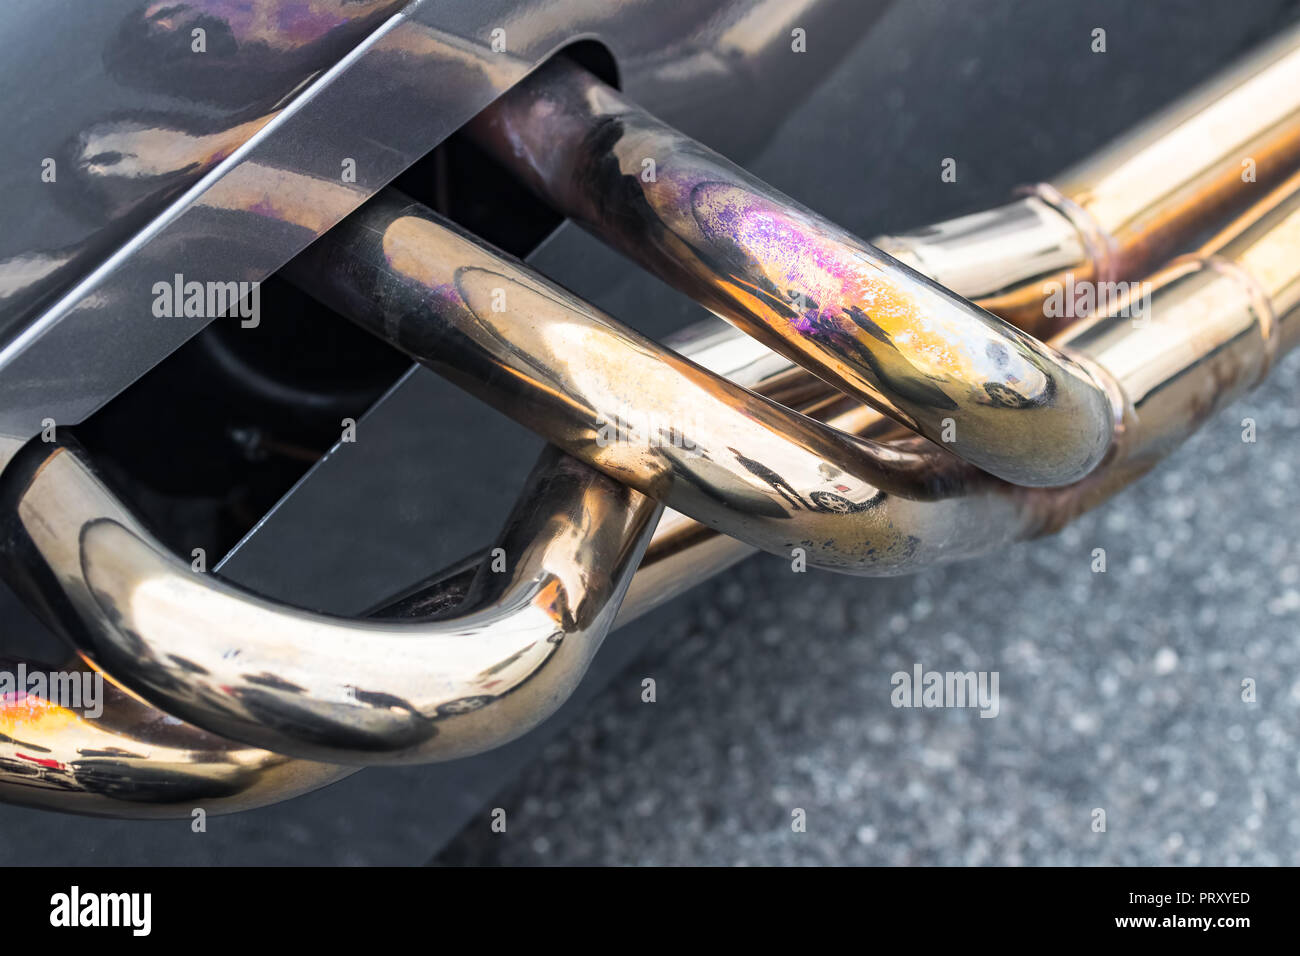 Exhaust Manifold Pipes With Shiny Coating On A Race Car Stock Photo